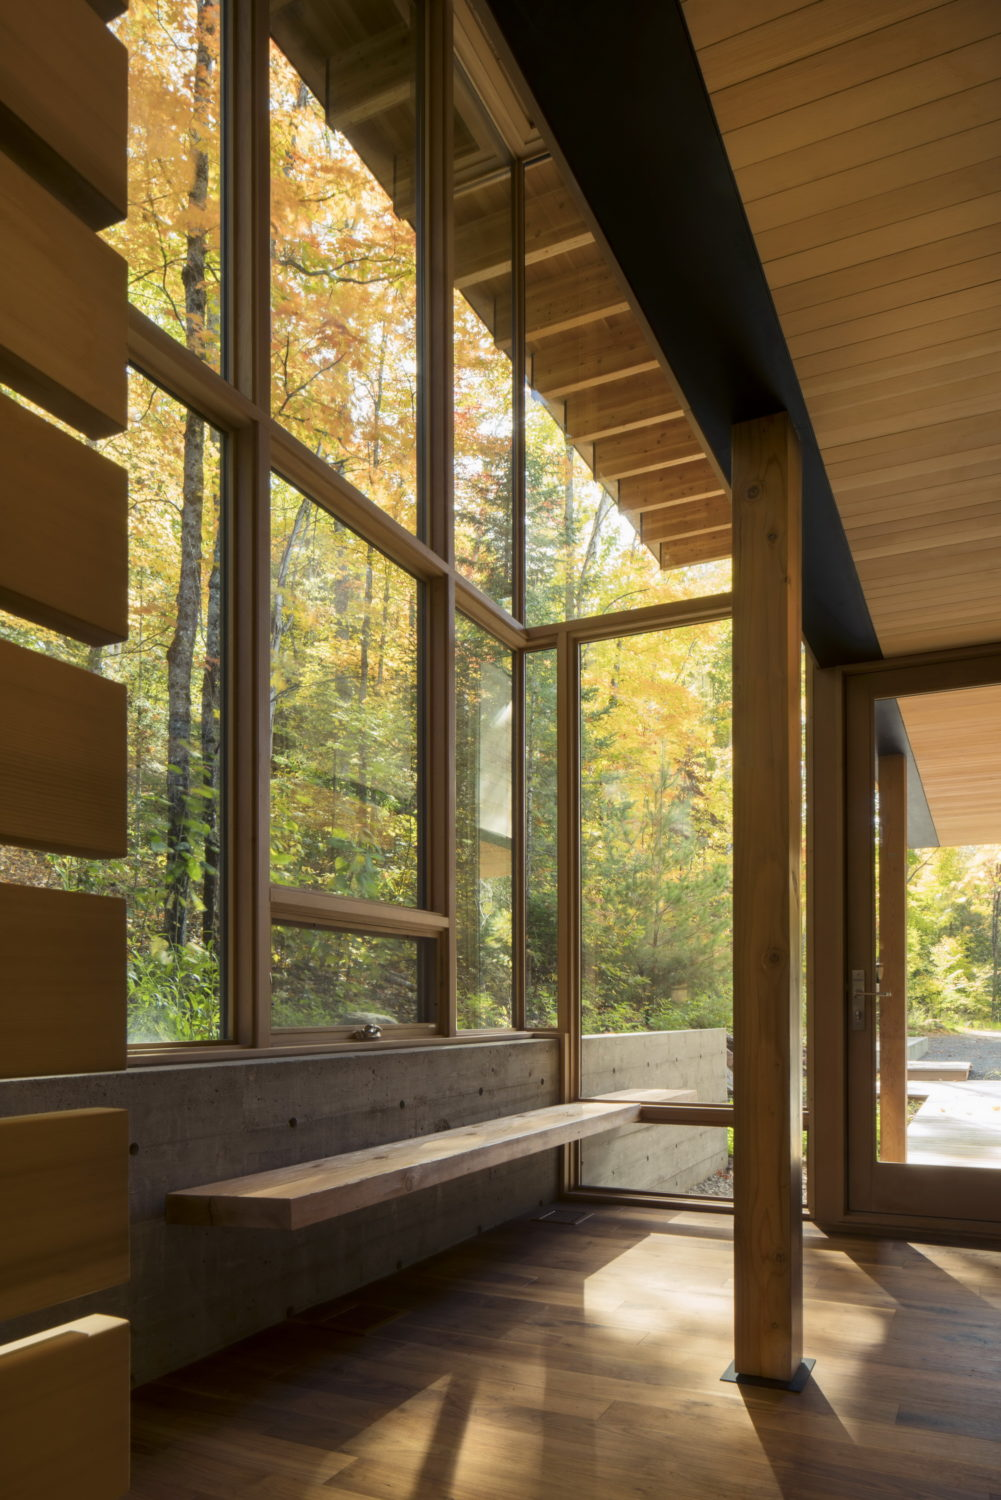 The Bear Stand by Bohlin Cywinski Jackson